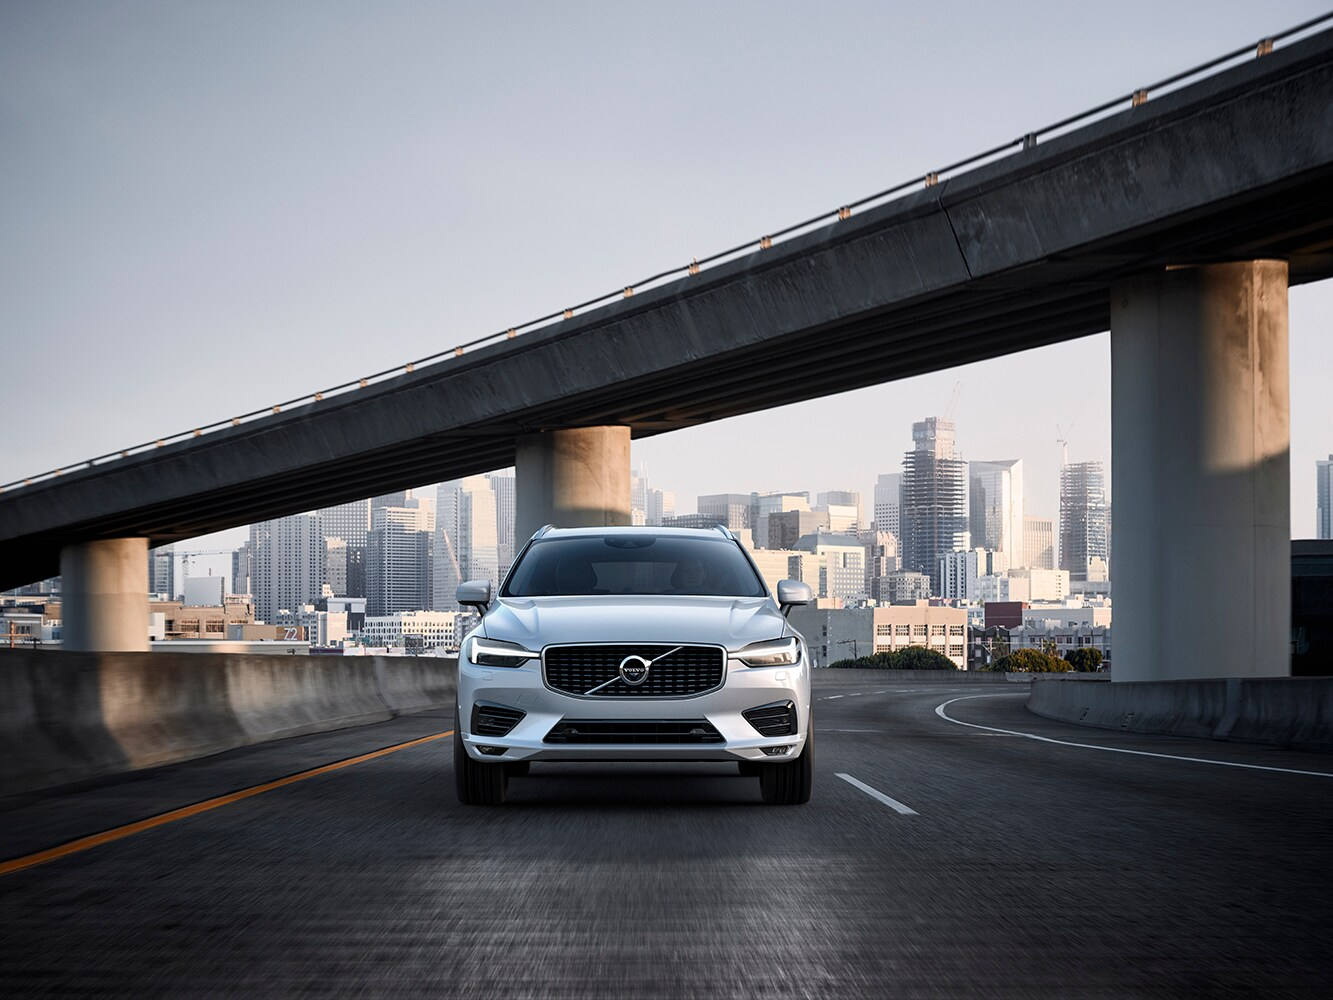 Front view of the new Volvo XC60 R-Design driving on a freeway